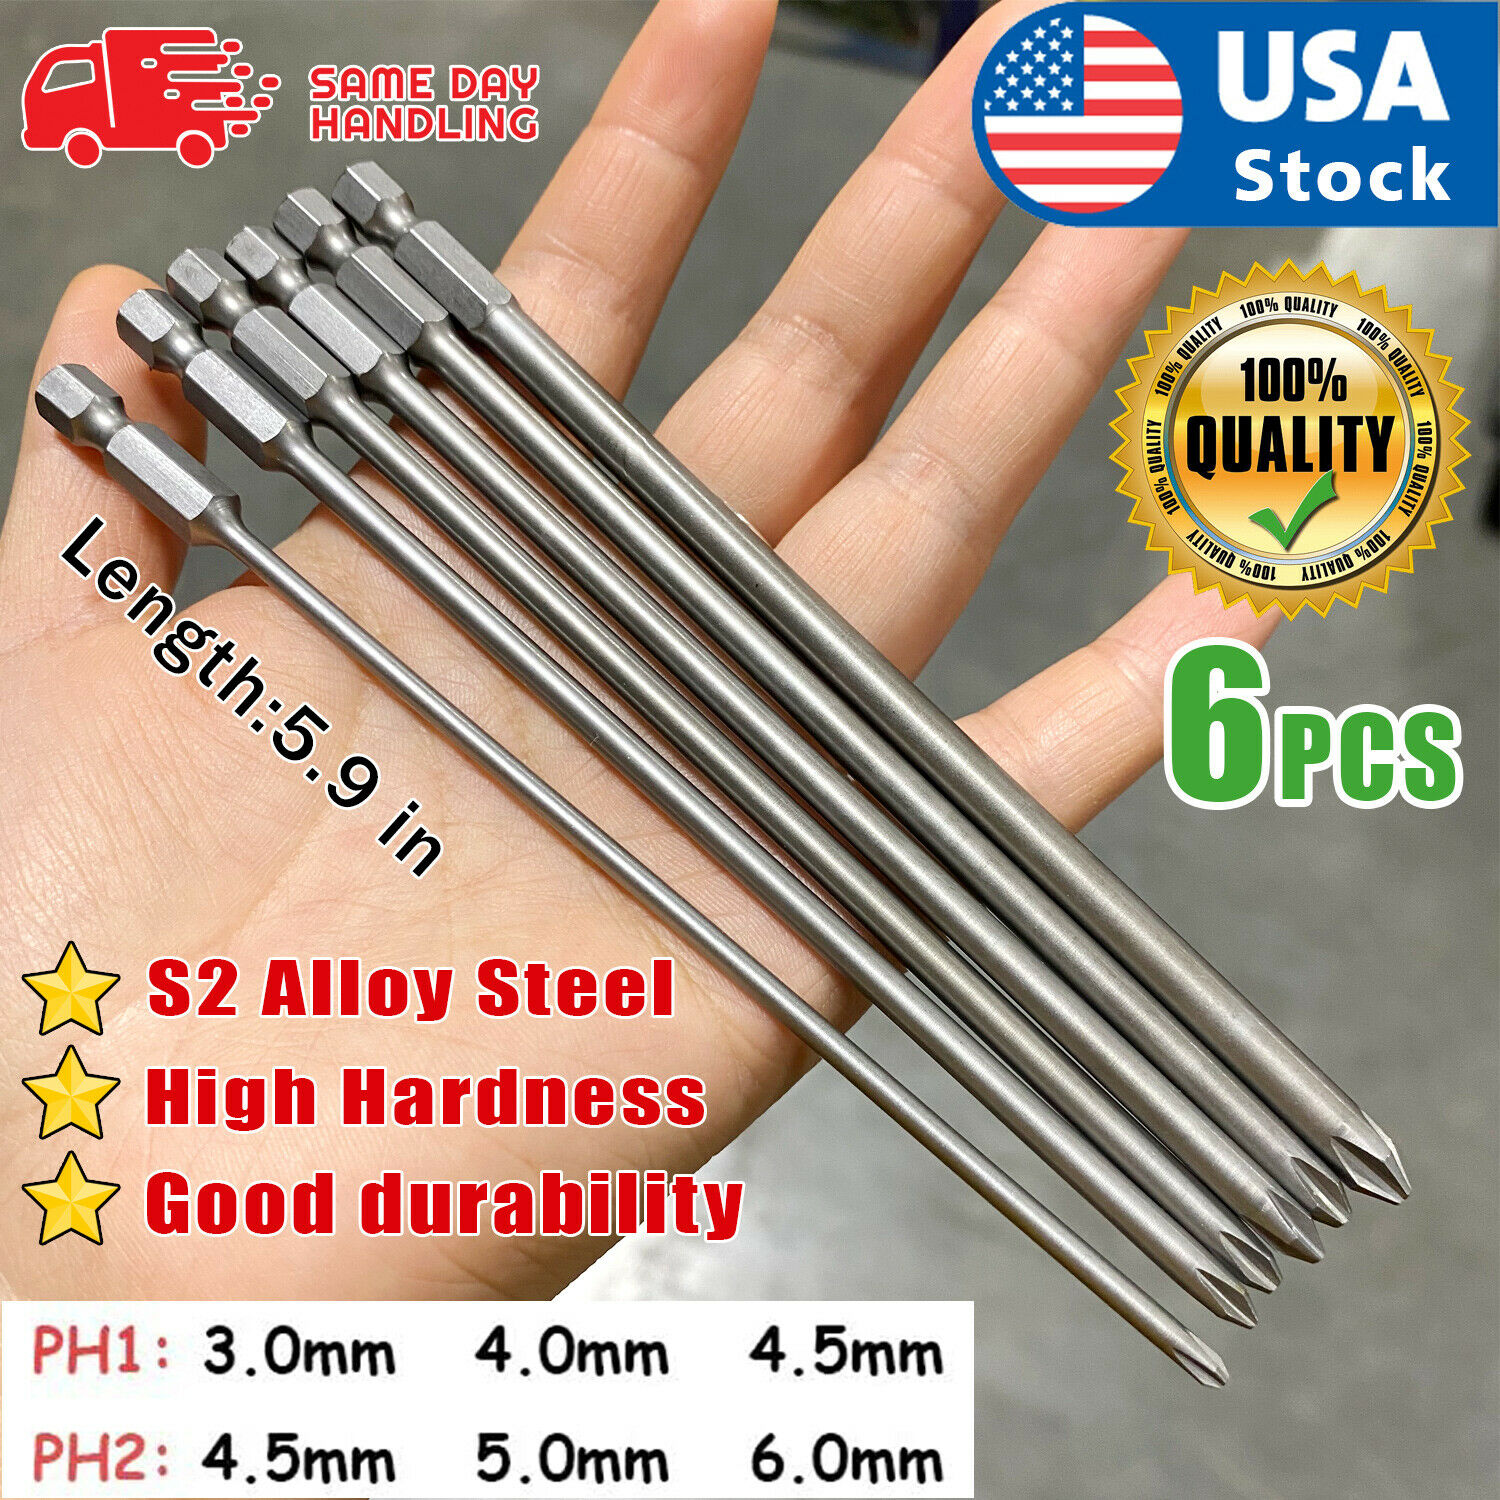 USA 6pcs PHILLIPS 6″ MAGNETIC PH2 TIPS SCREW DRIVER INSERT BIT POWER DRILL ROUND Bits, Chisels & Breaker Points